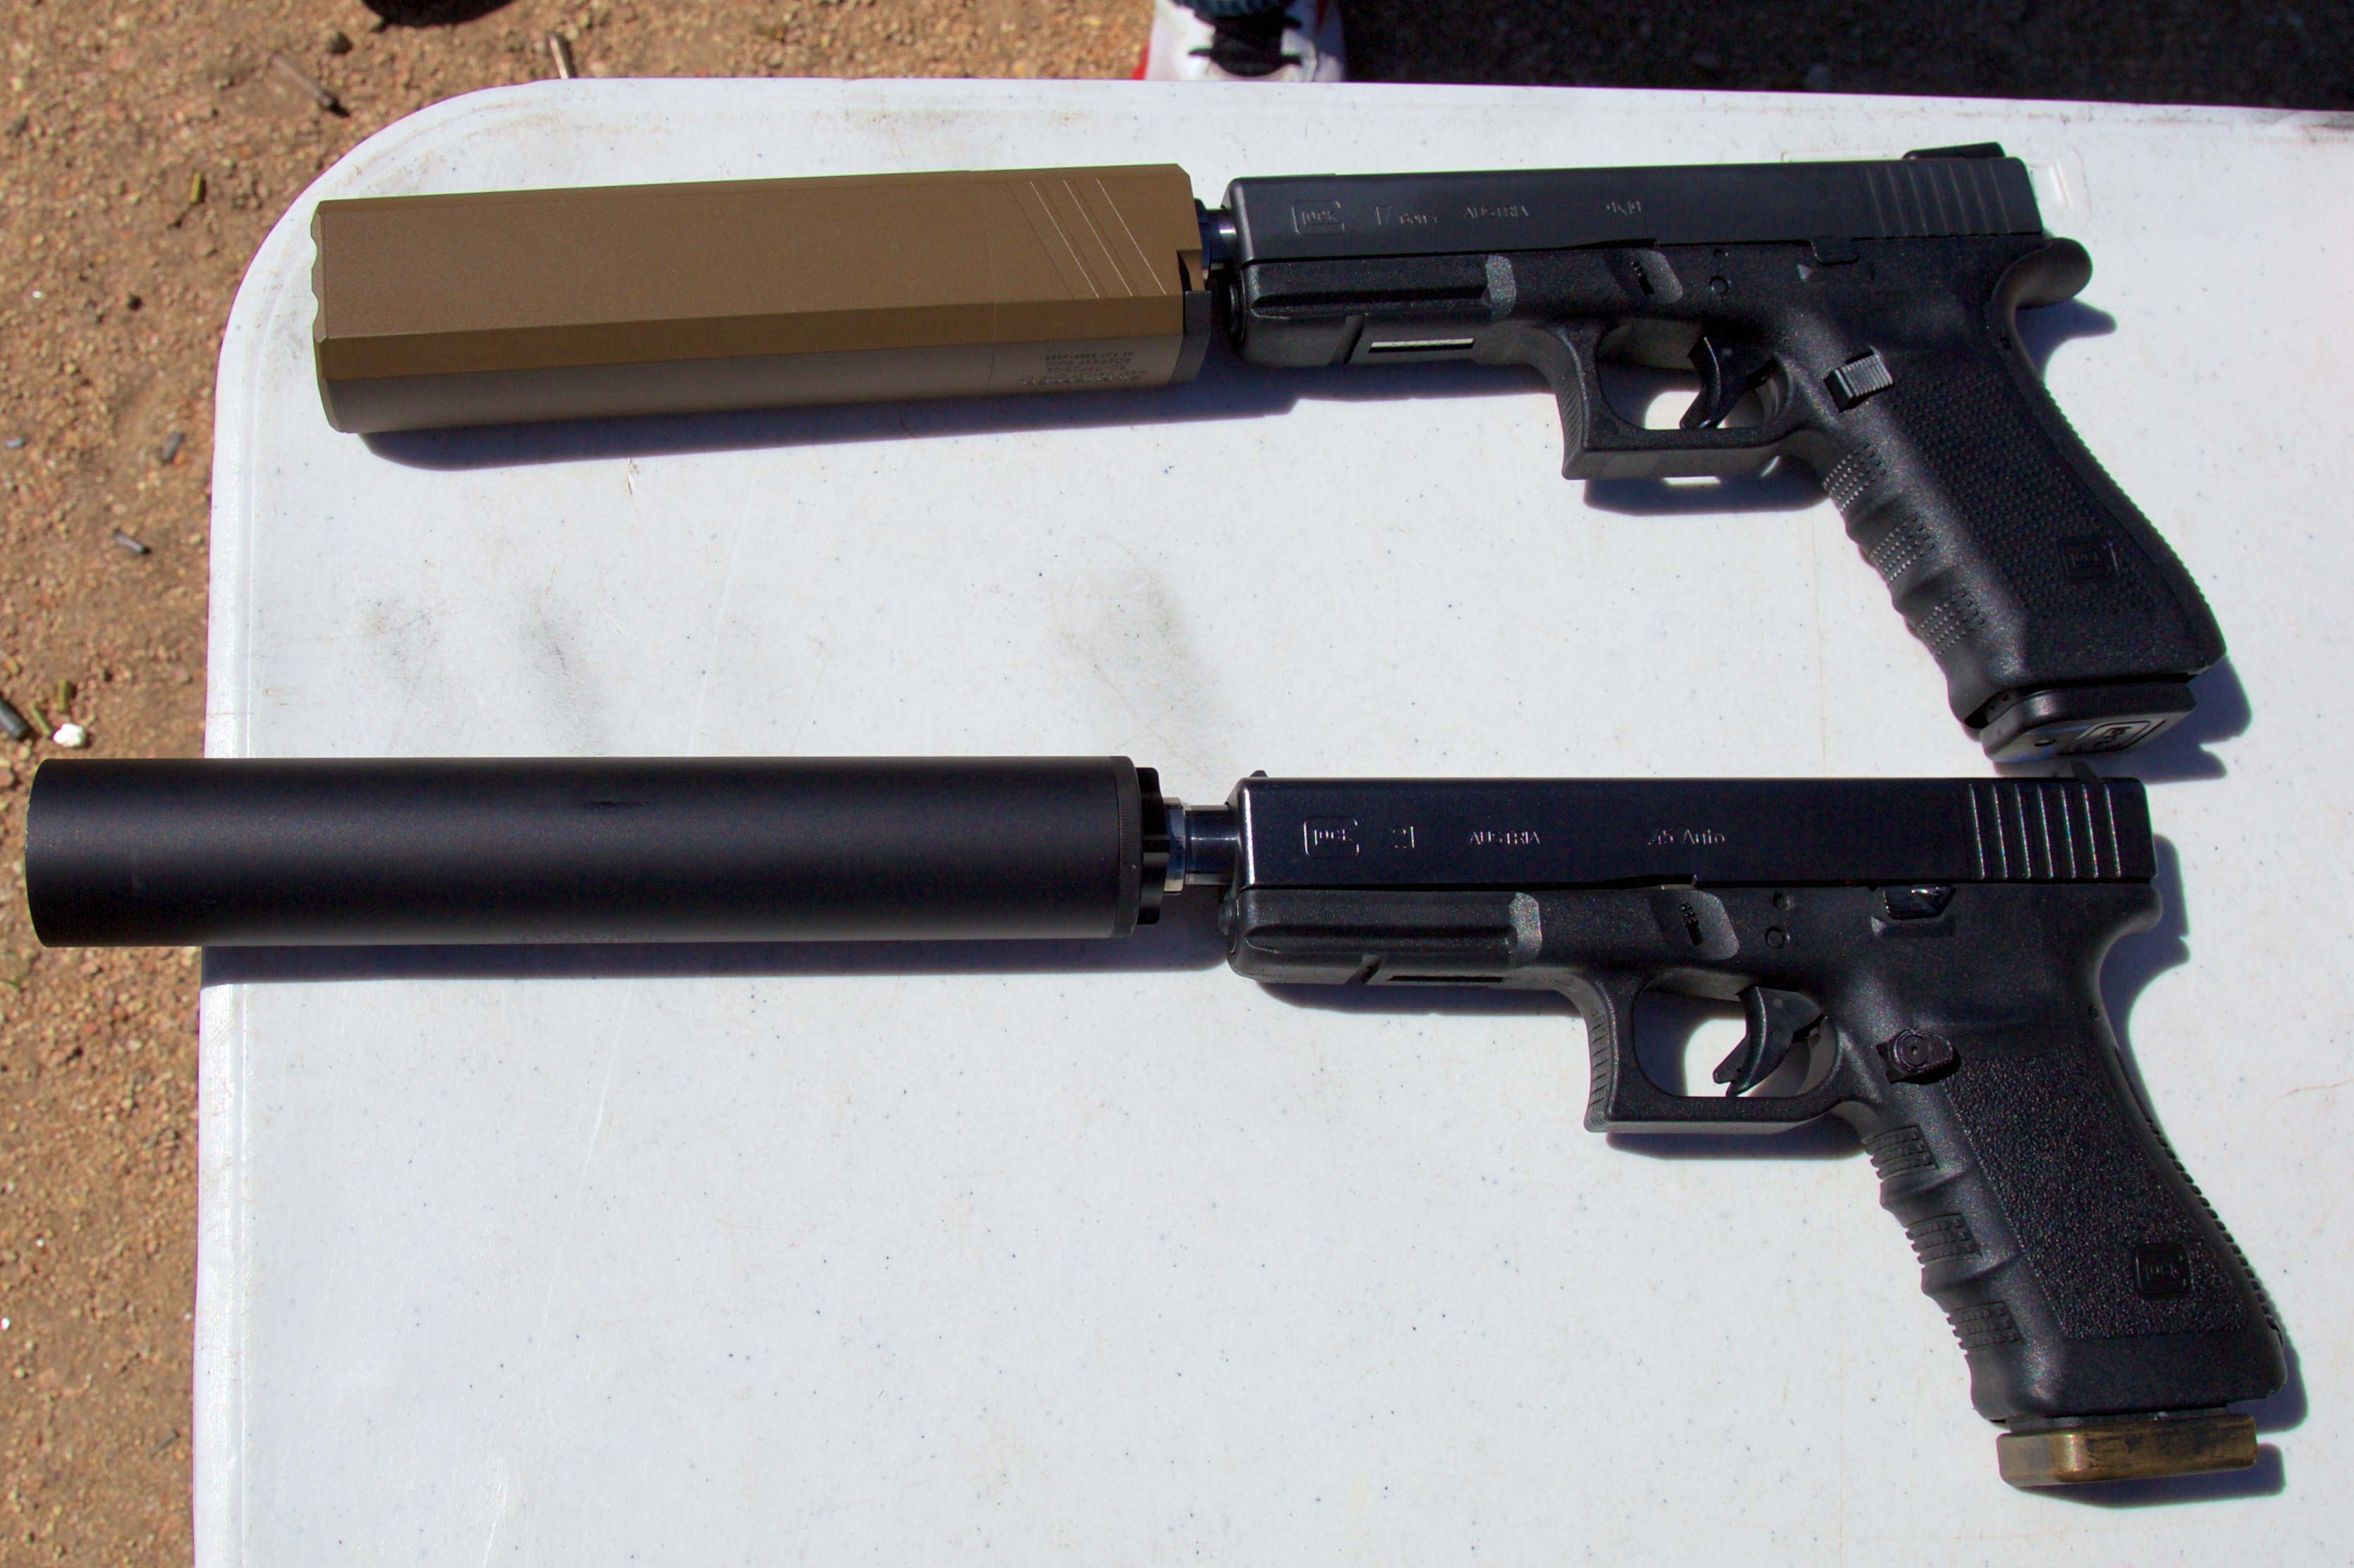 The eccentric Osprey suppressor, top, versus the more traditionally round Octane, bottom. The Osprey's shape keeps it out of the way of the pistol's sights.